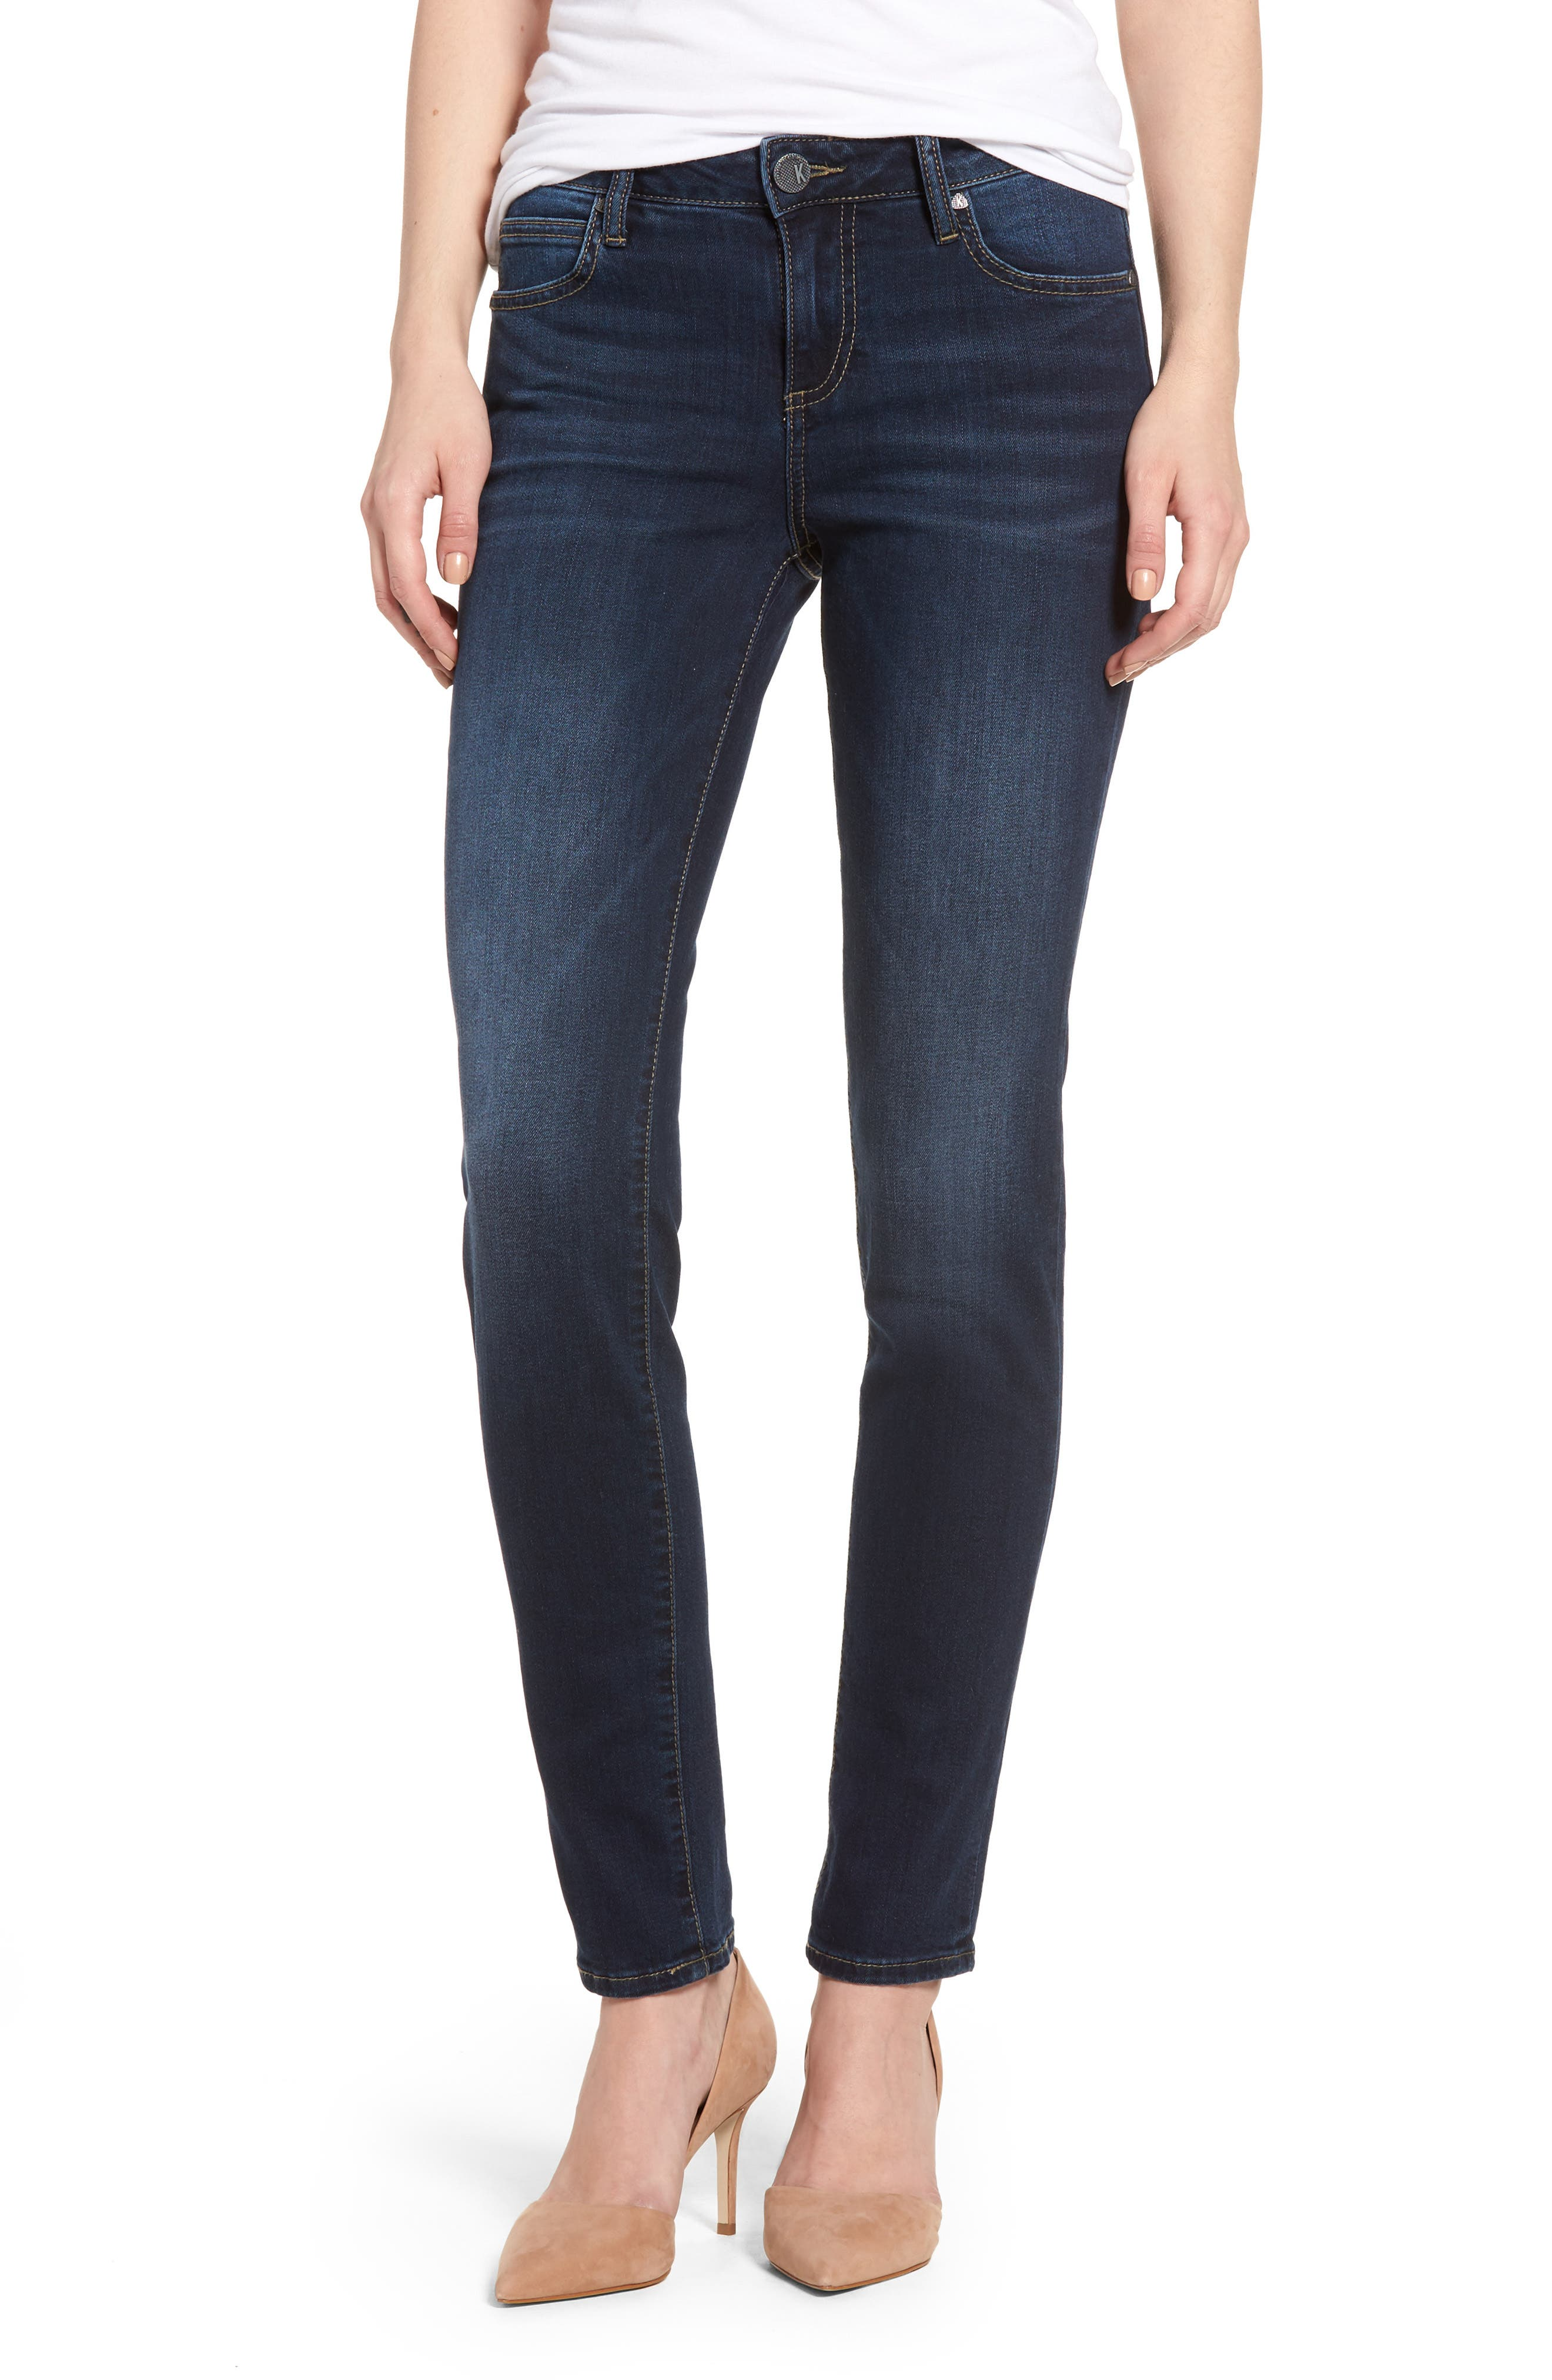 Diana Curvy Fit Skinny Jeans,                         Main,                         color, Likeable W/ Dk Stone Base Wash